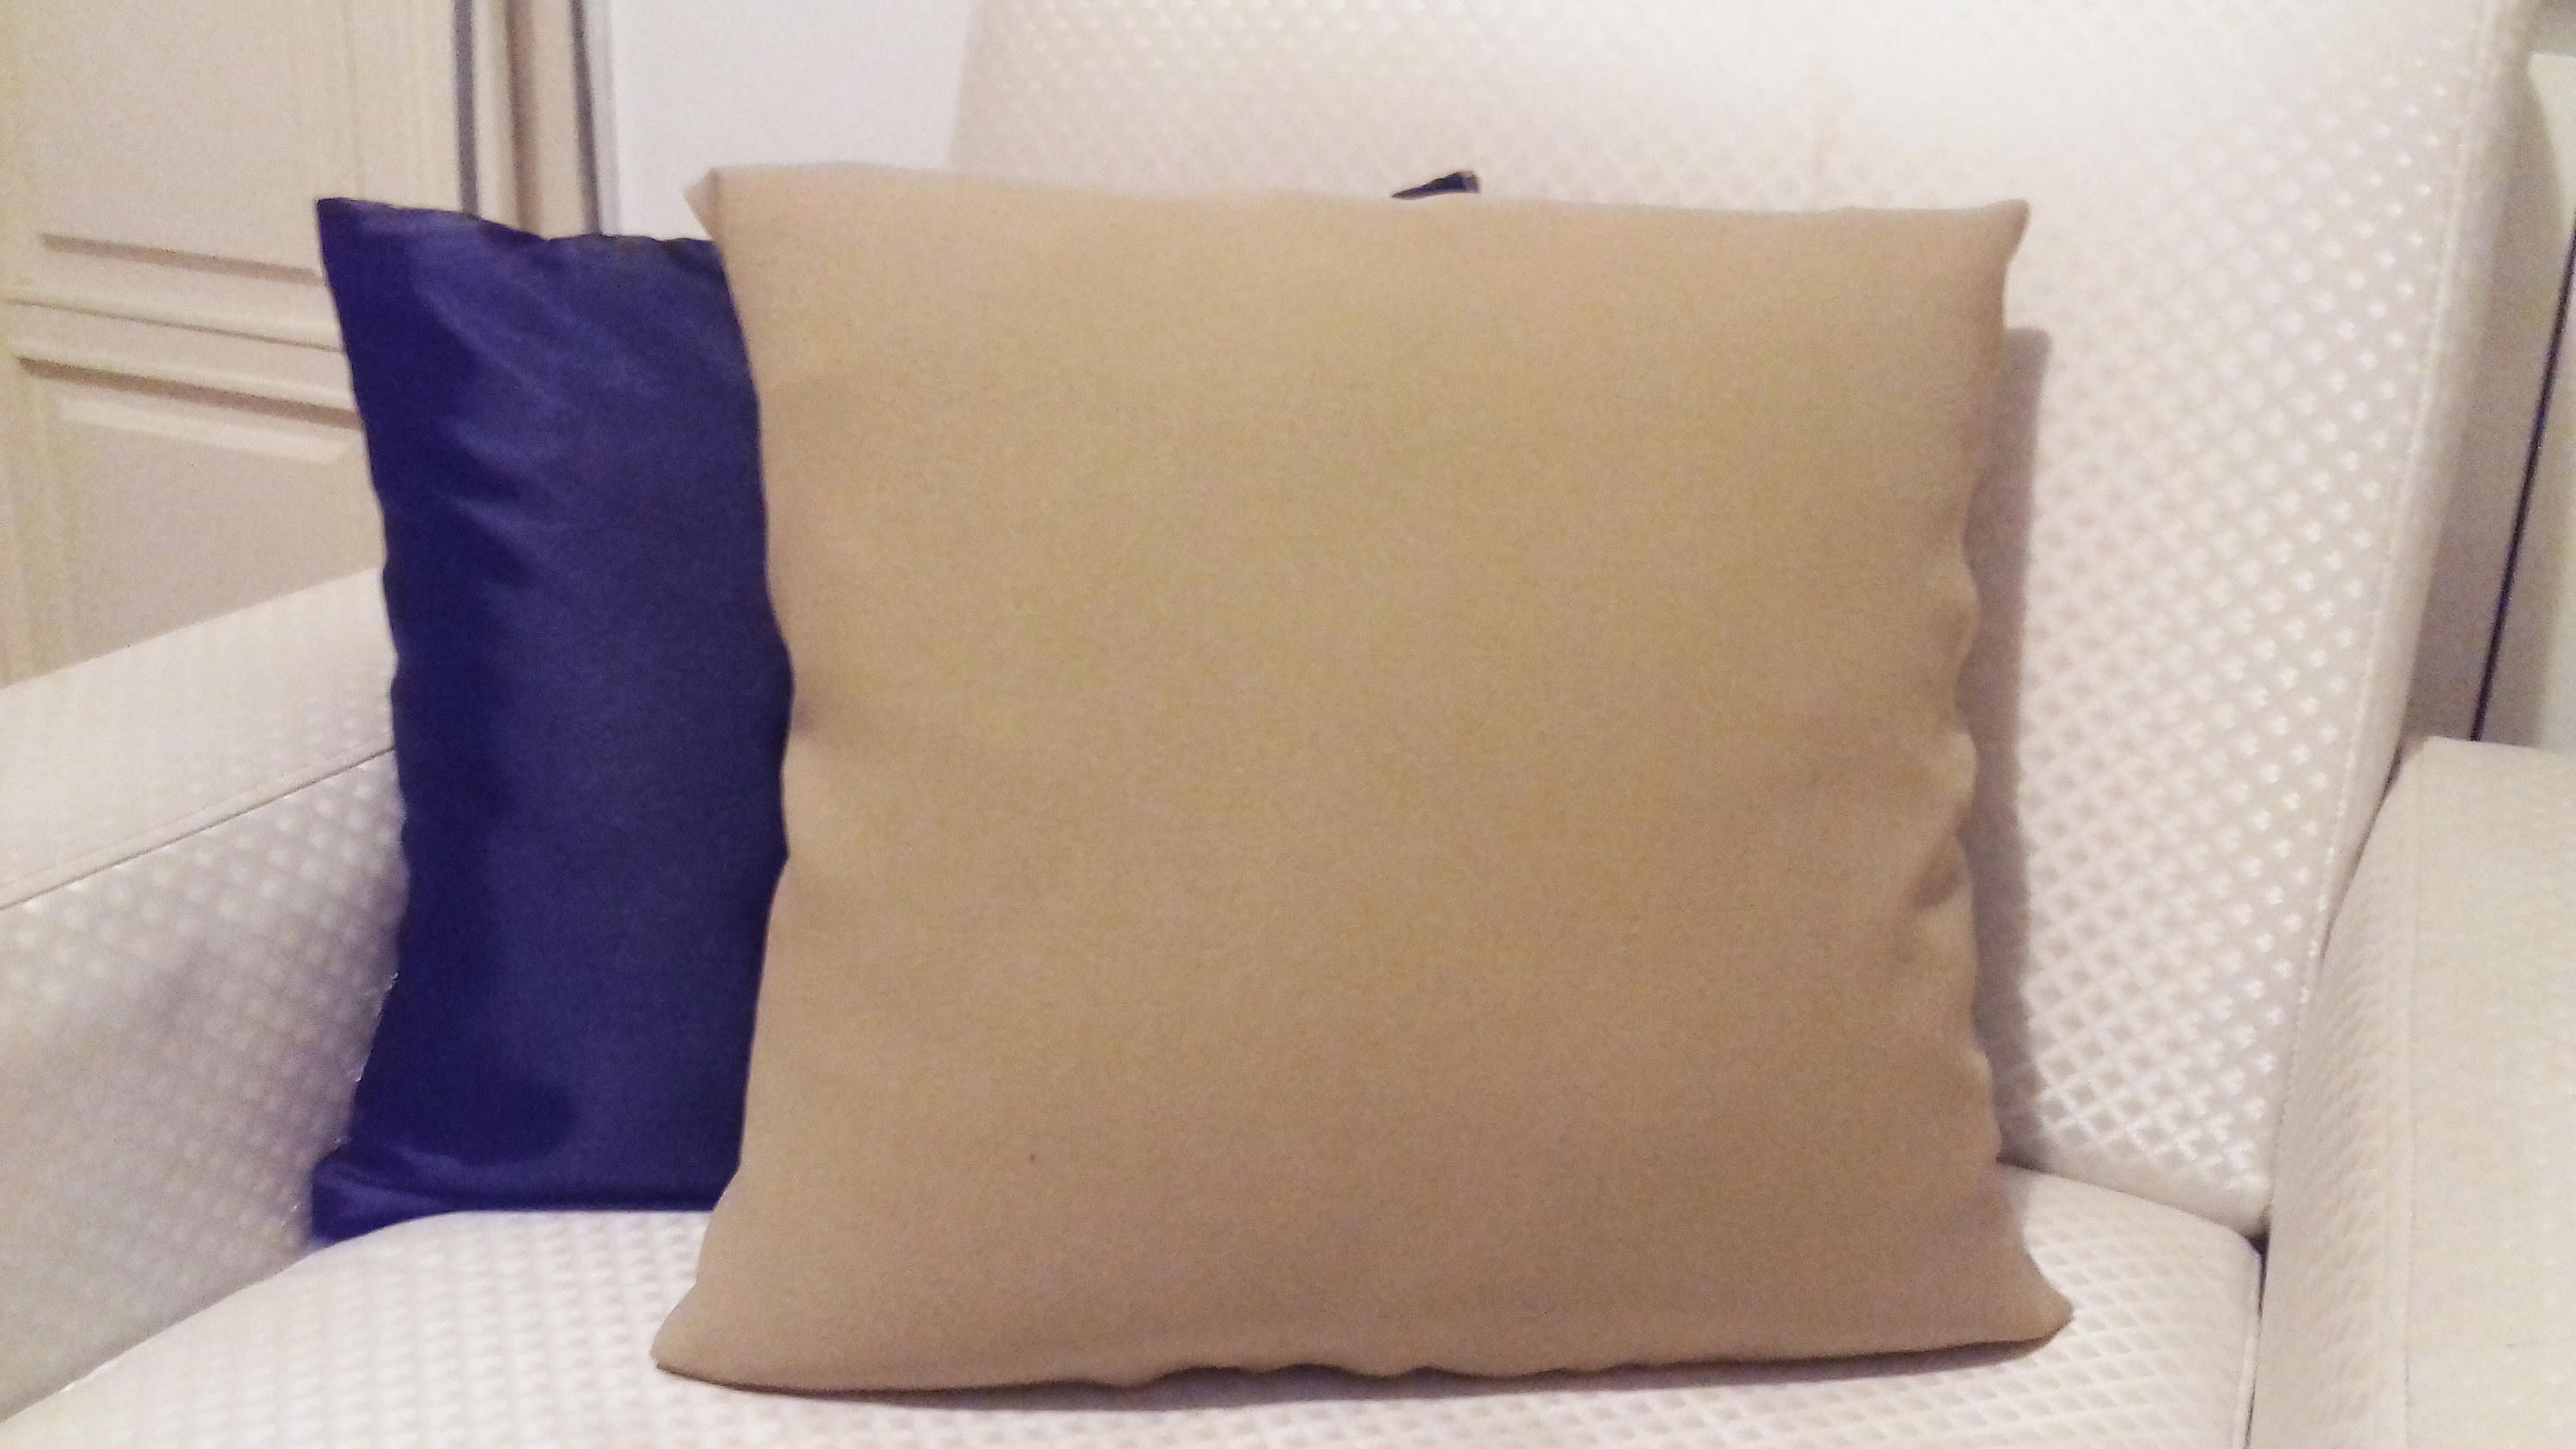 set of two throw pillow covers toss pillows bedroom decor sofa  - set of two throw pillow covers toss pillows bedroom decor sofa pillows modernpillow case zippered pillow x cushion cover